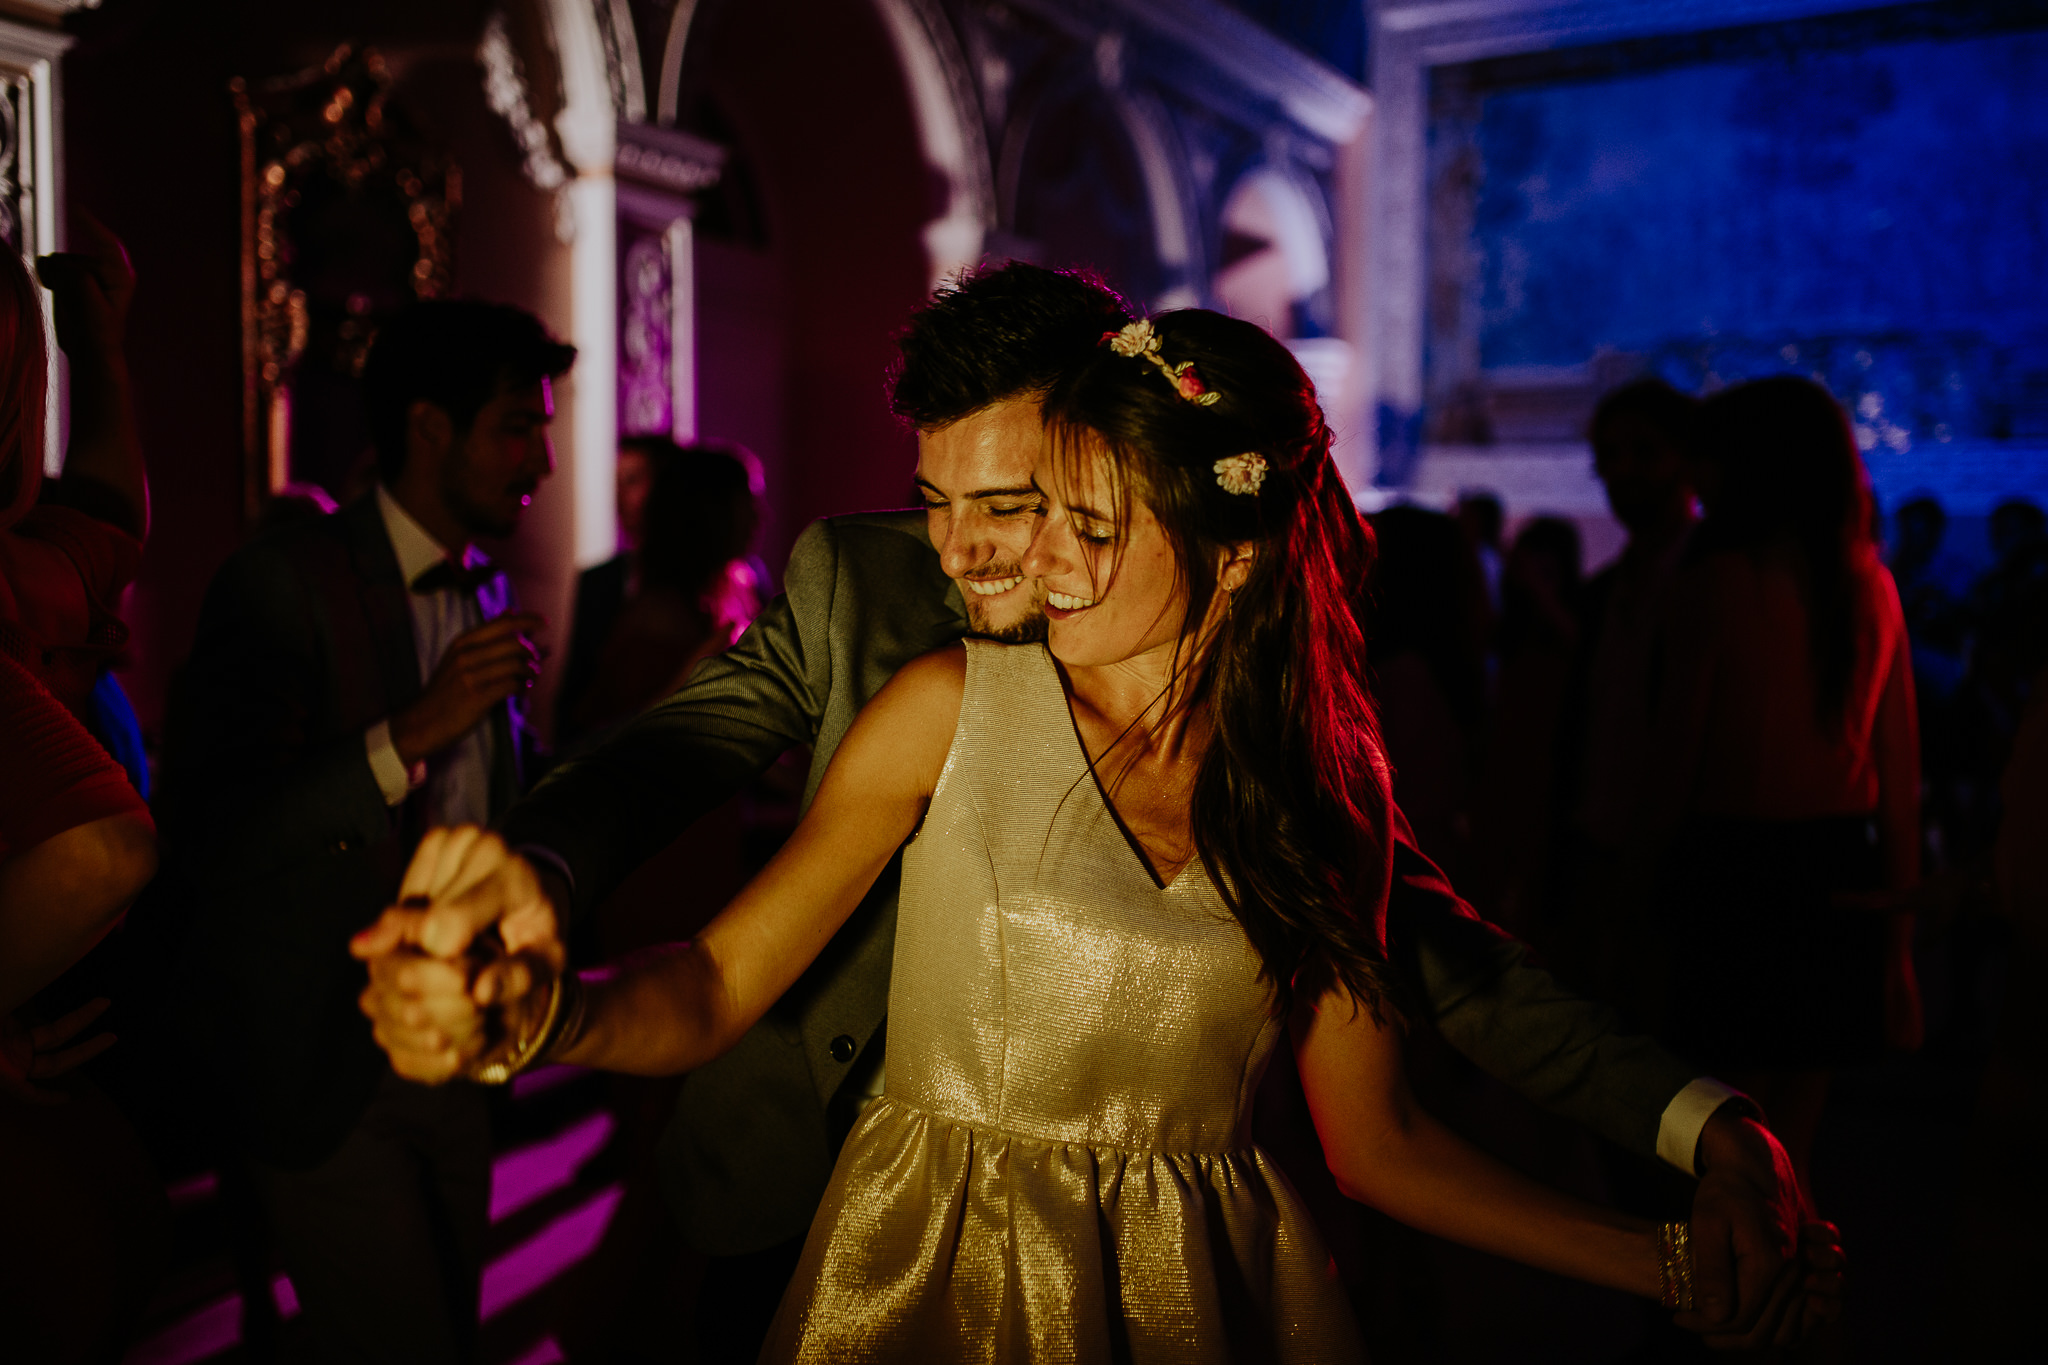 romina_thomas_destination_wedding_photography_fotografia_de_casamento_lisbon_sintra_penha_longa_resort-54